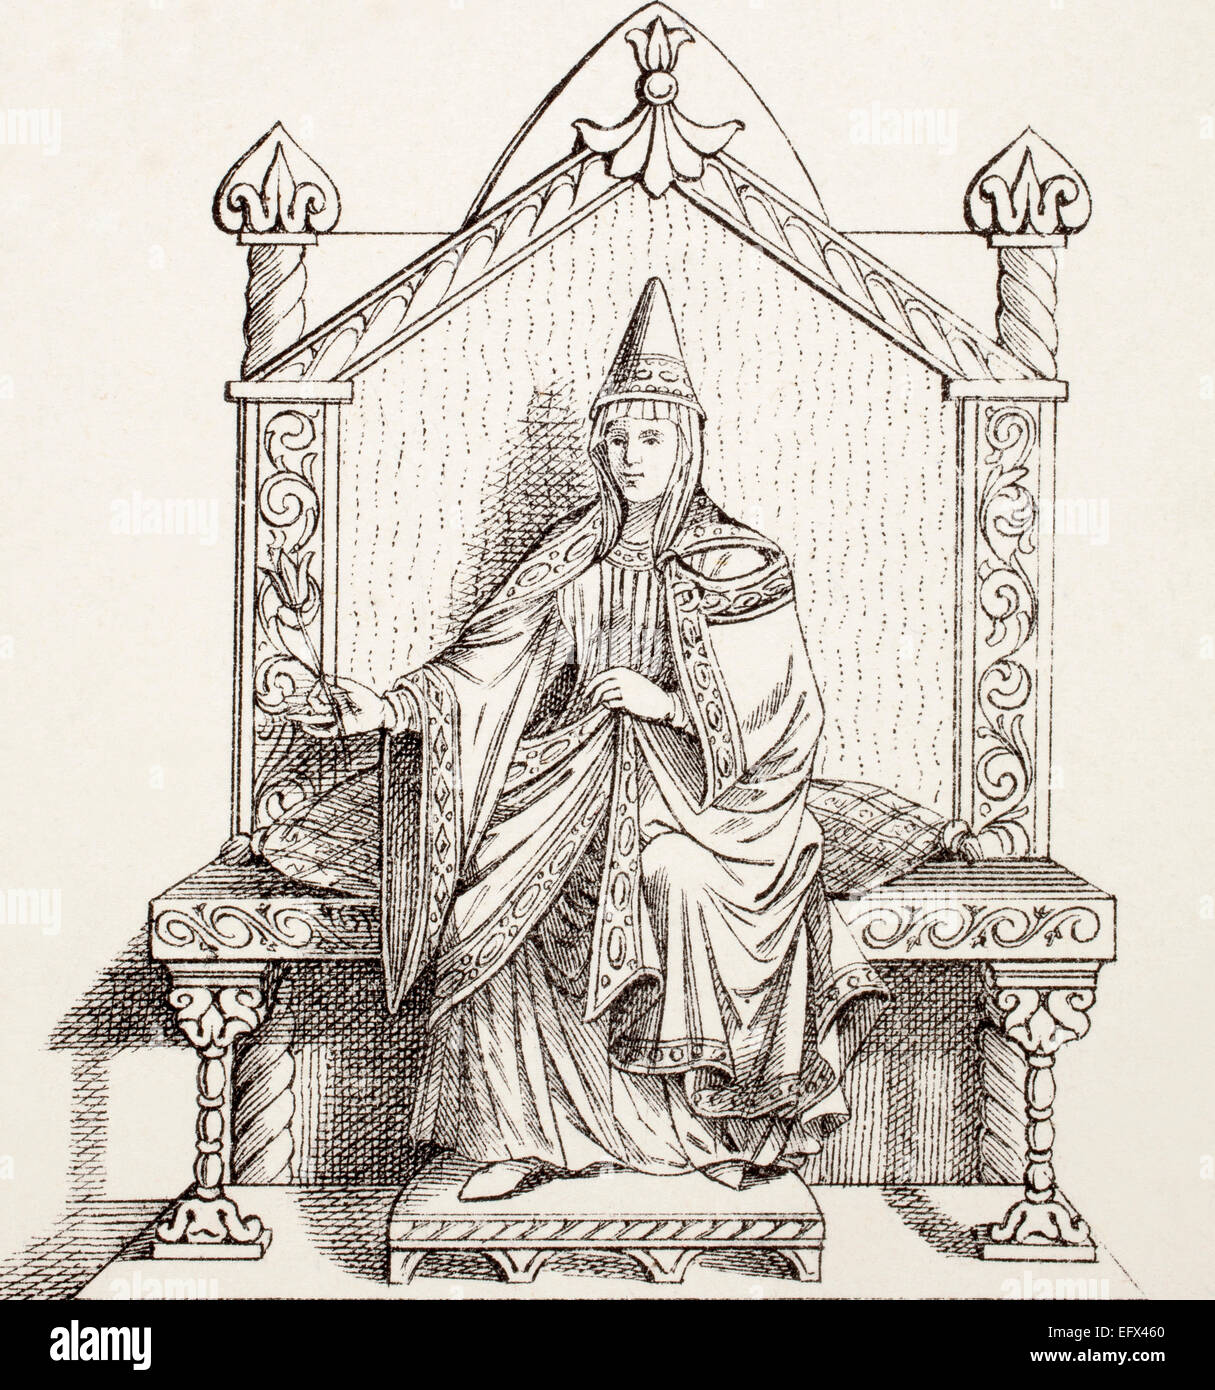 Matilda of Tuscany, 1046 – 1115.  Italian noblewoman, daughter of Boniface III, supporter of Pope Gregory VII during - Stock Image